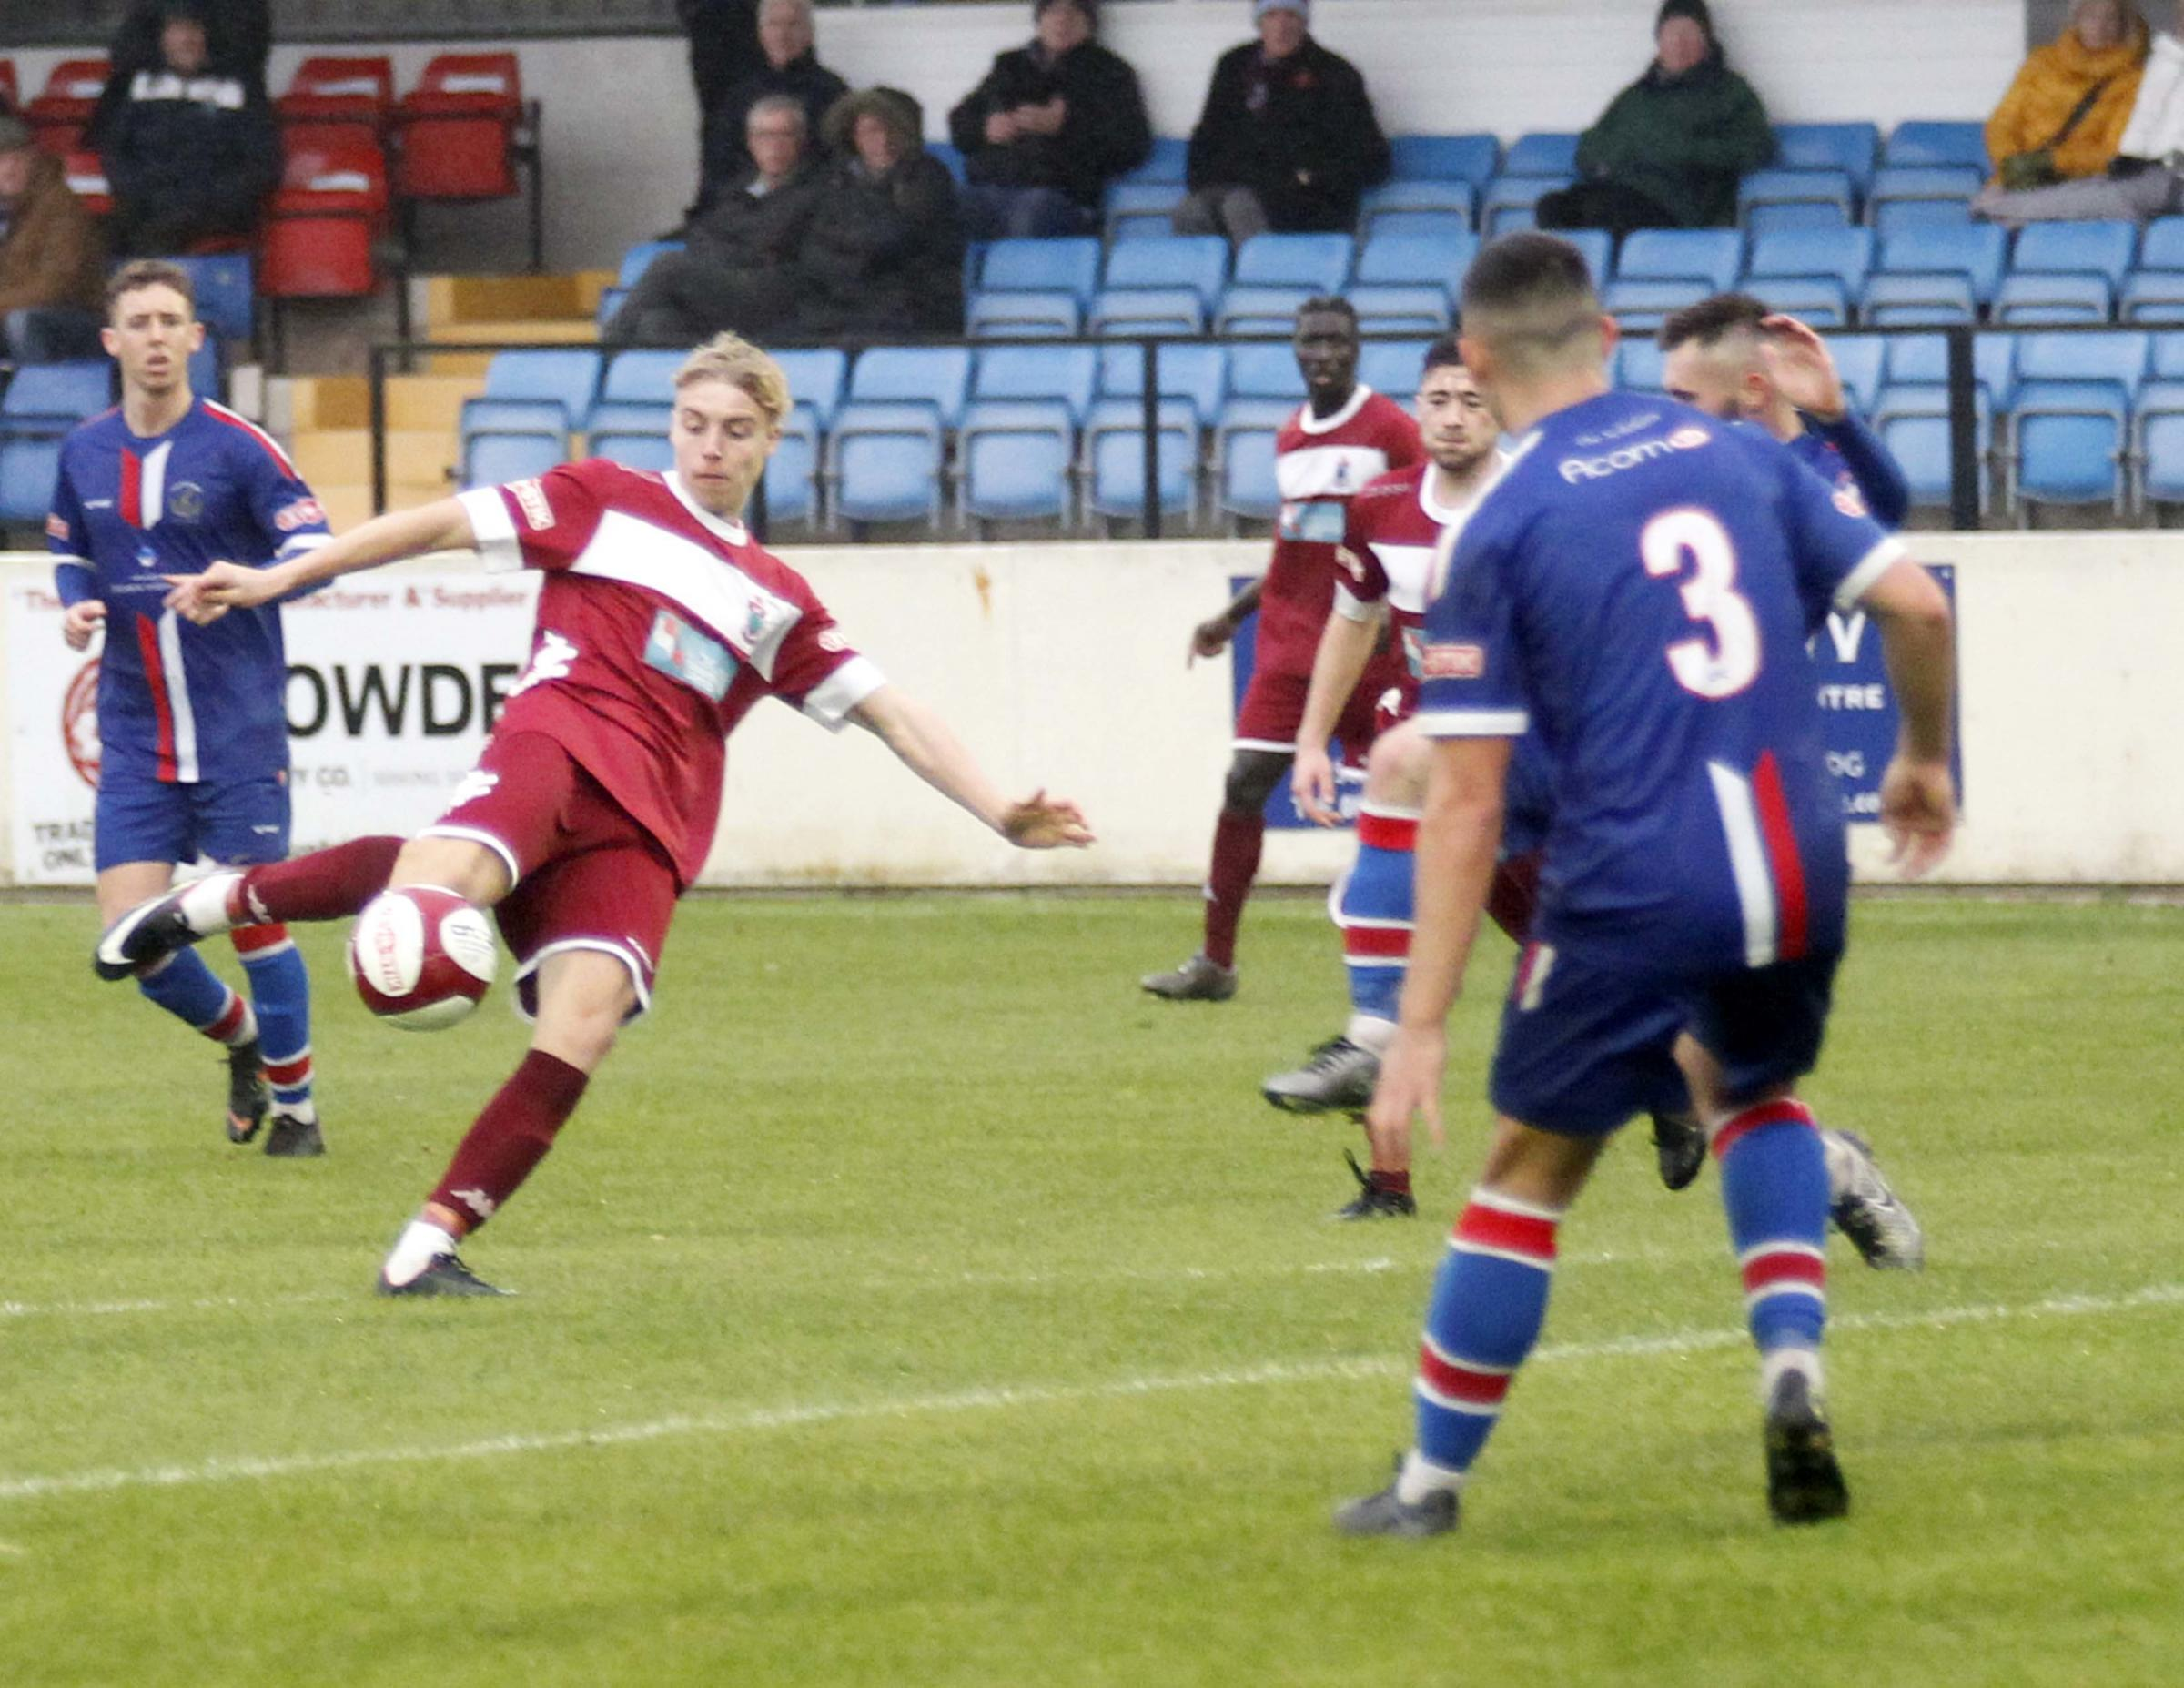 Blake Robinson equalised for Colwyn Bay against Mossley (Photo by Dave Thomas)